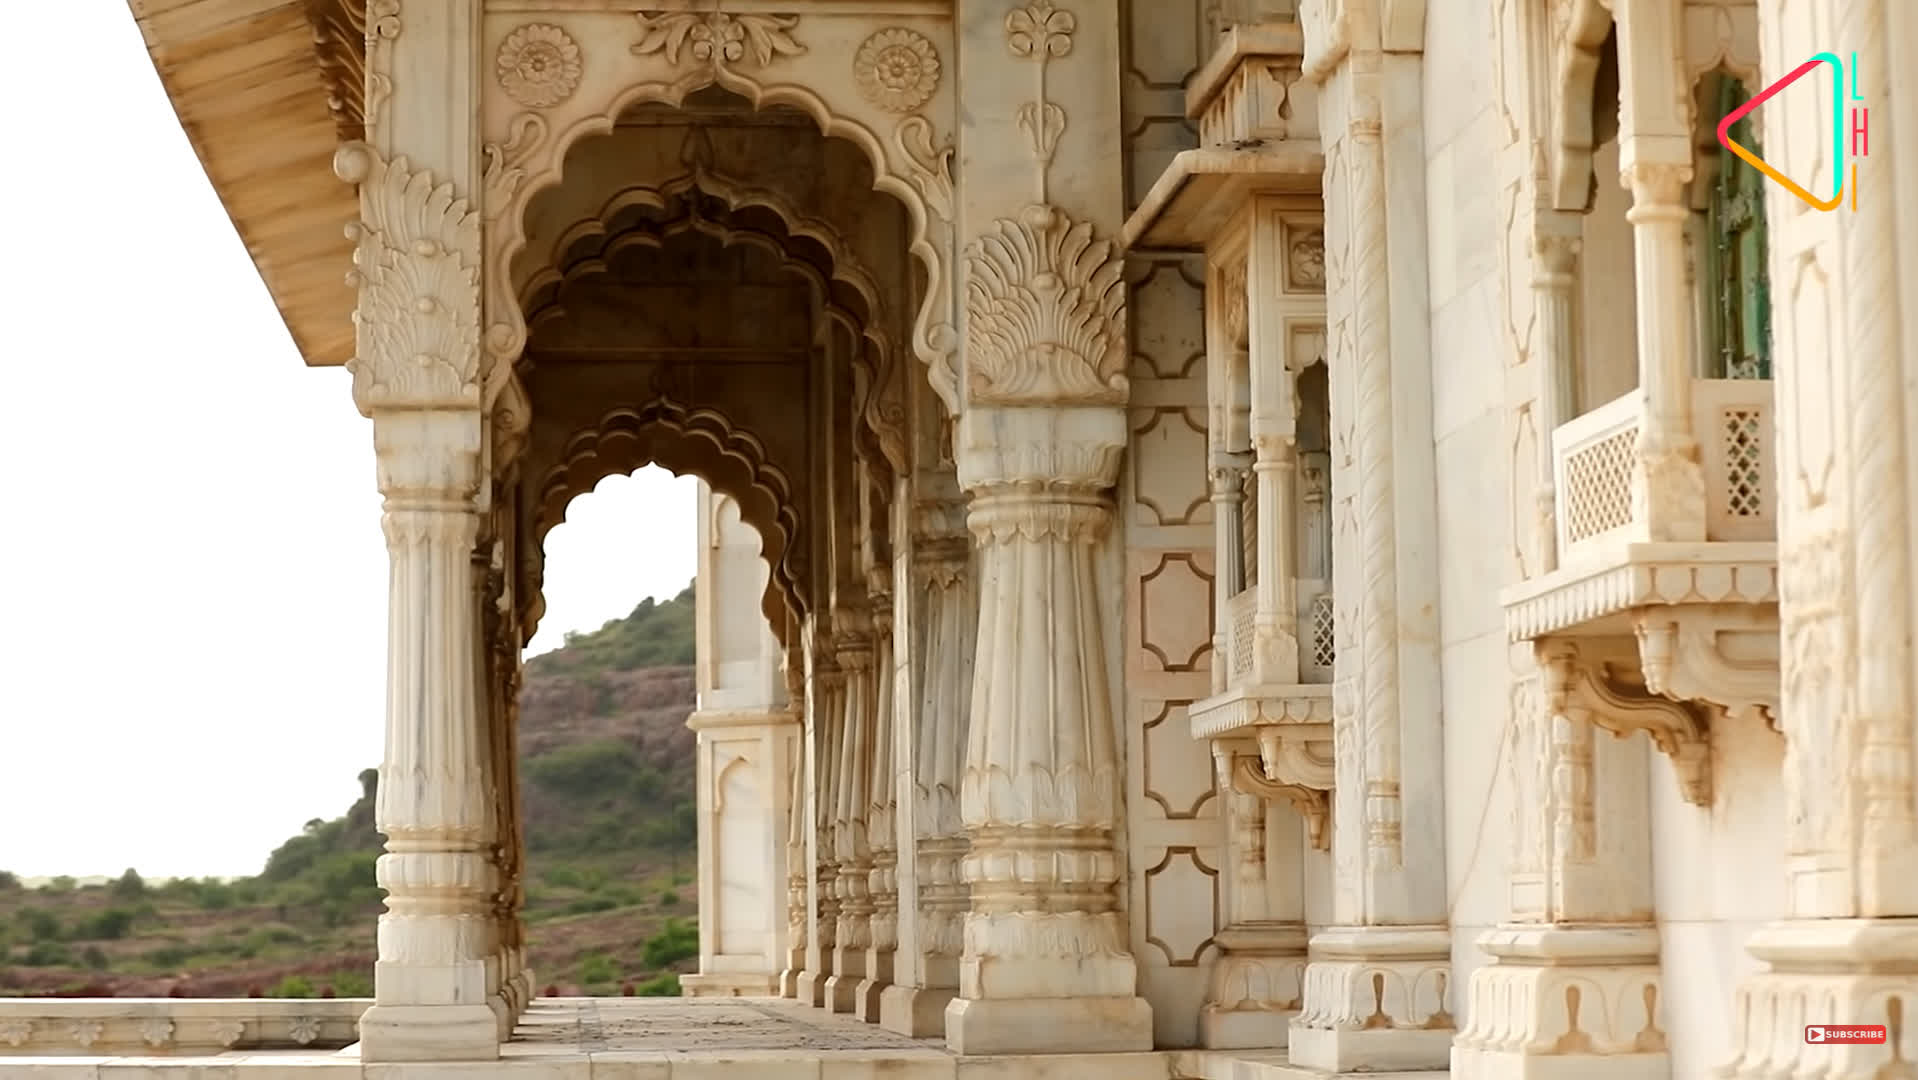 A view of Jaswant Thada   LHI